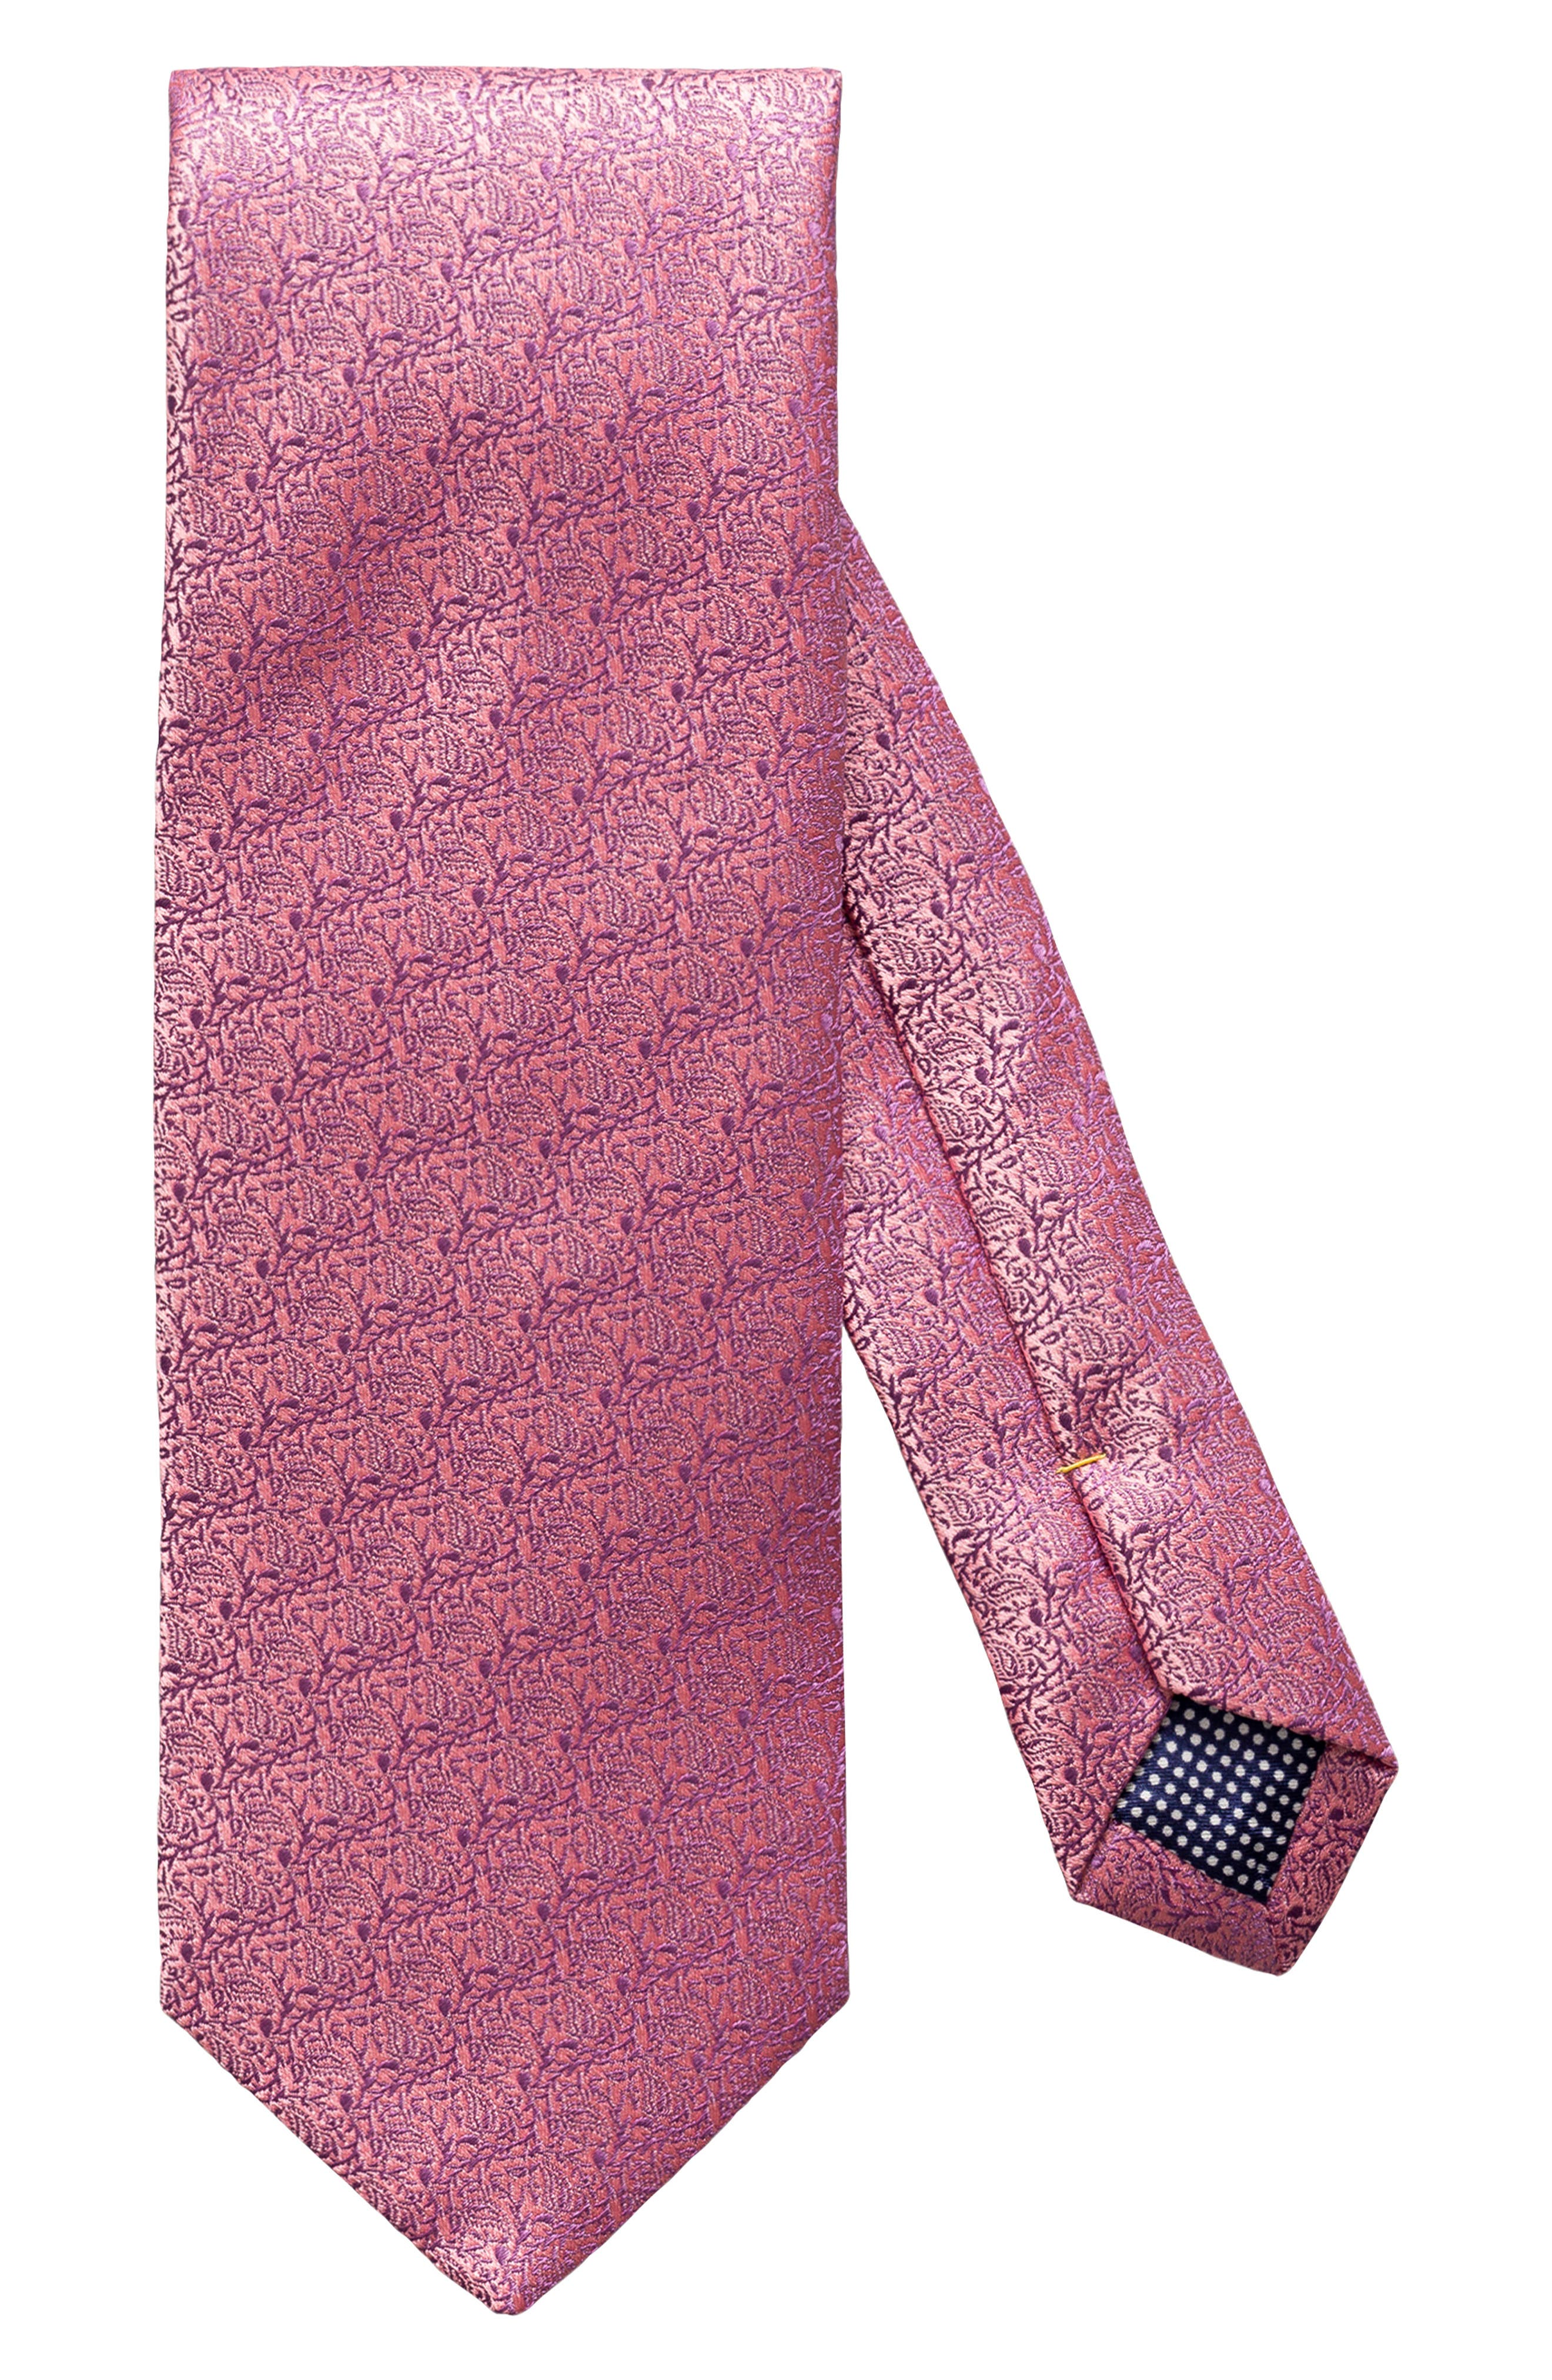 Image of Eton Textured Solid Silk Tie